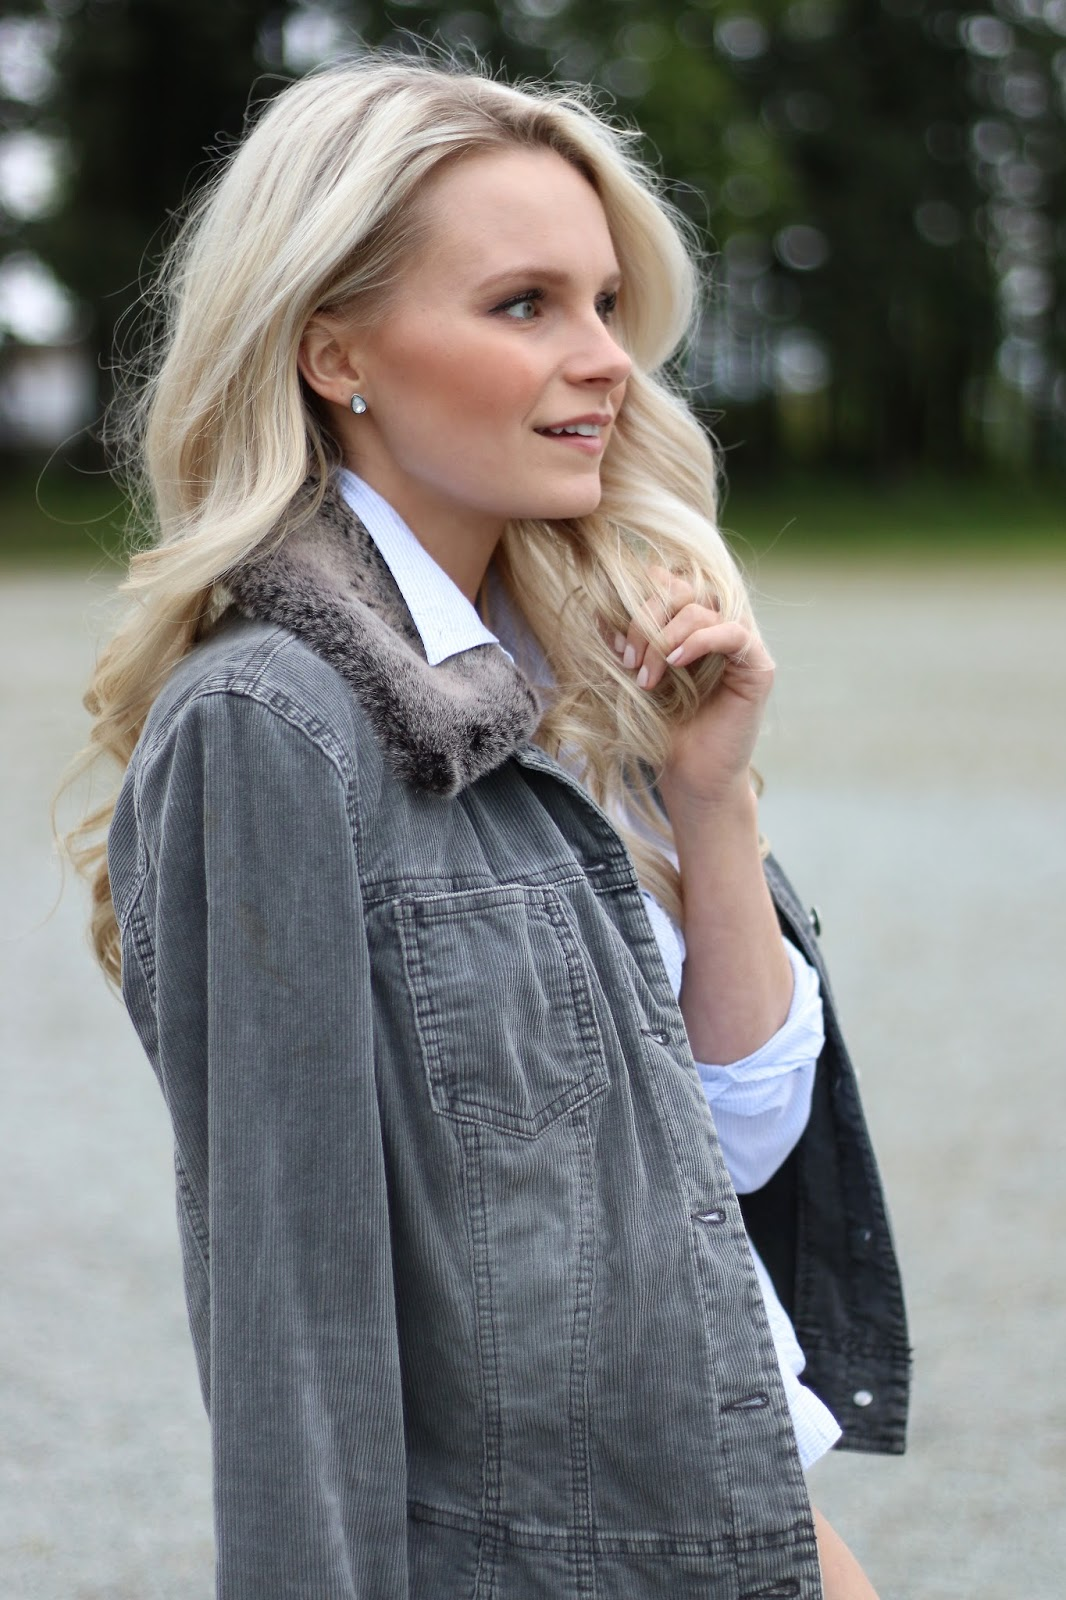 a blonde girls models vintage denim jacket with faux fur collar